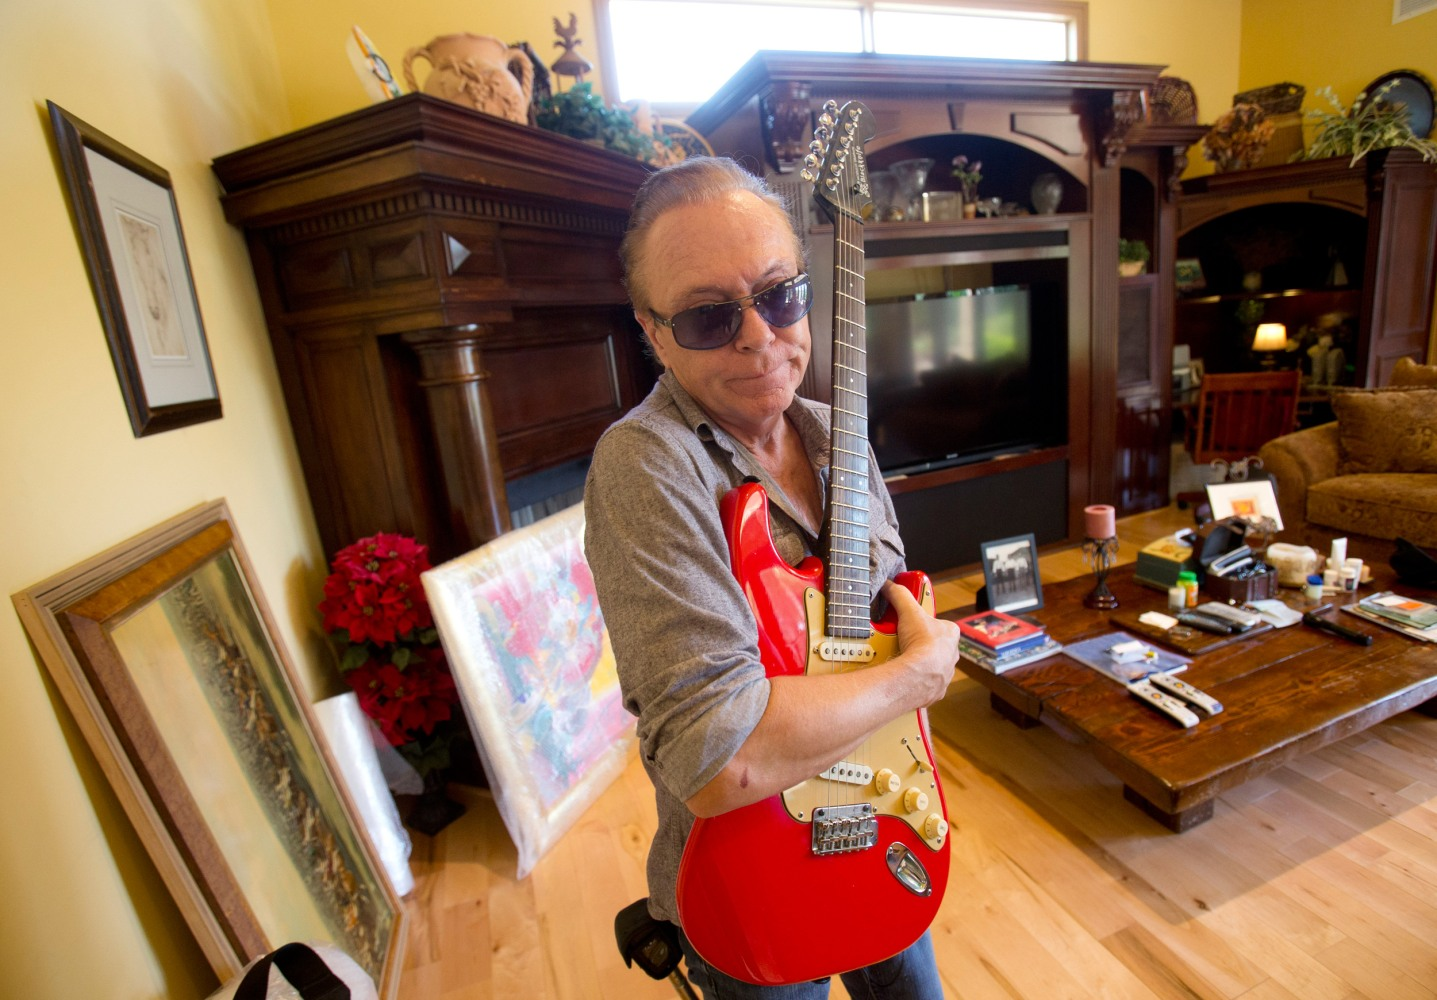 Ex Teen Idol David Cassidy Auctions Home After Bankruptcy Filing Nbc News